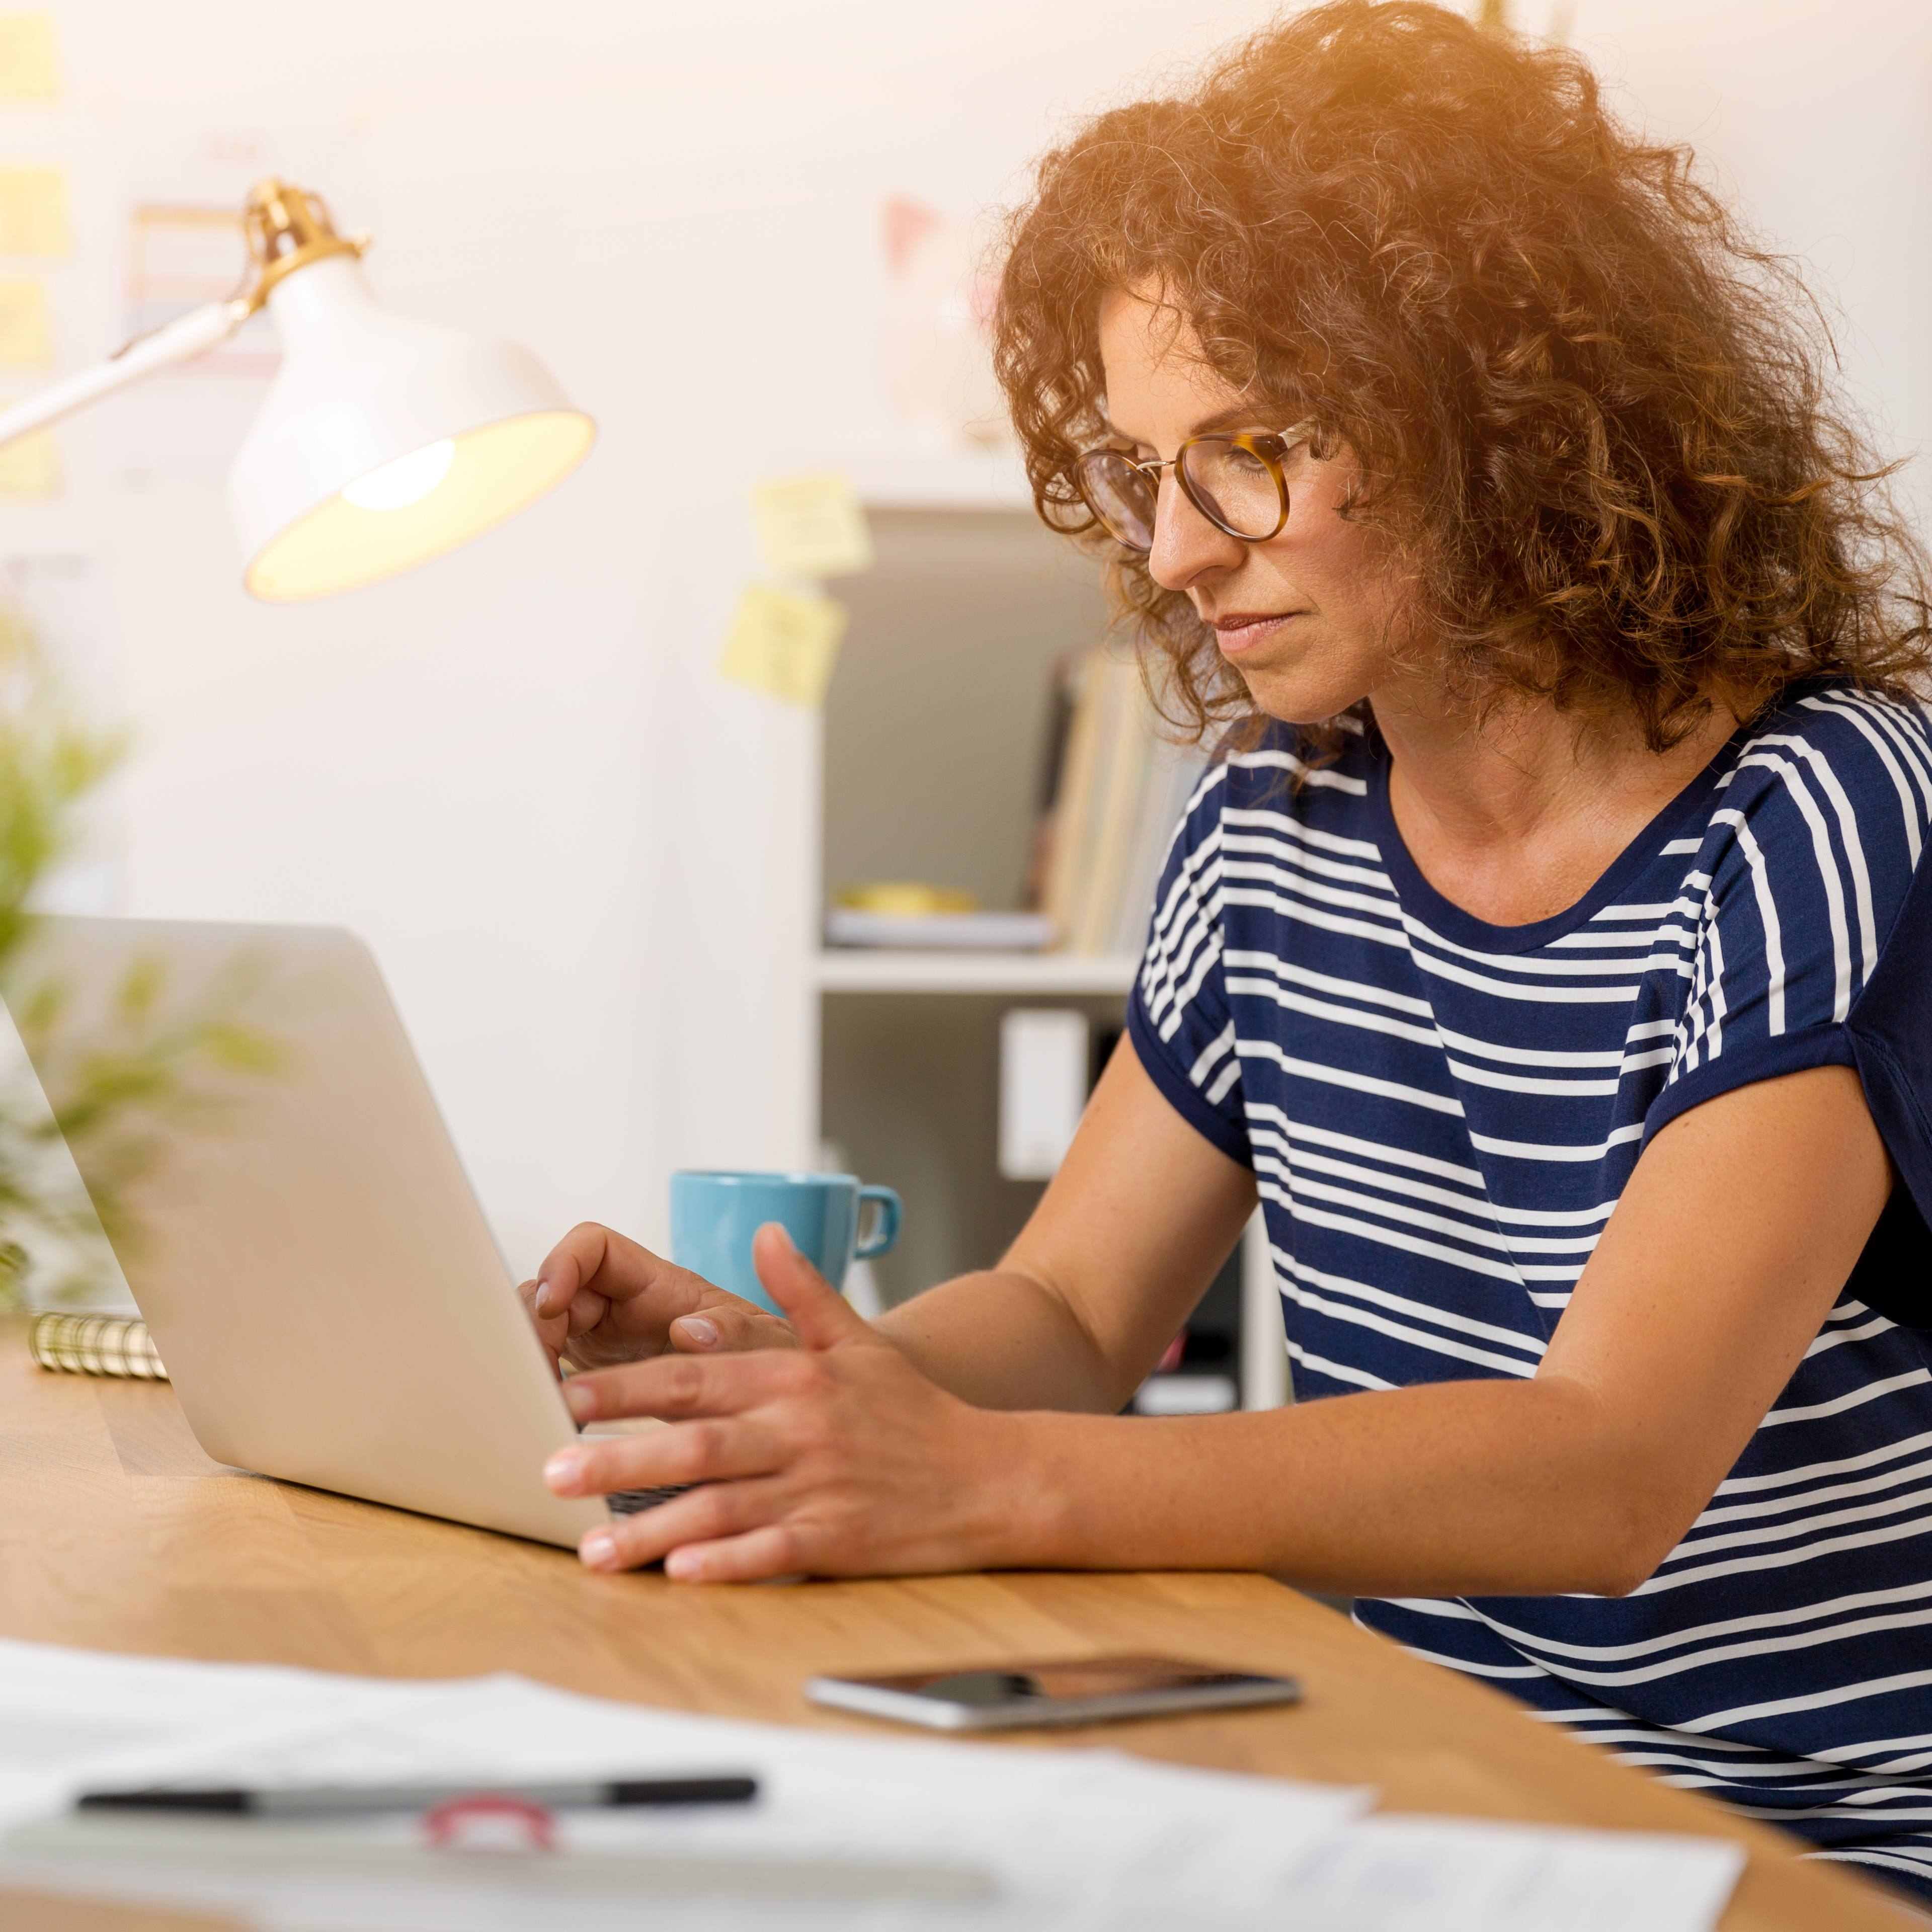 a middle-aged woman looking at a laptop screen, with a concerned look on her face